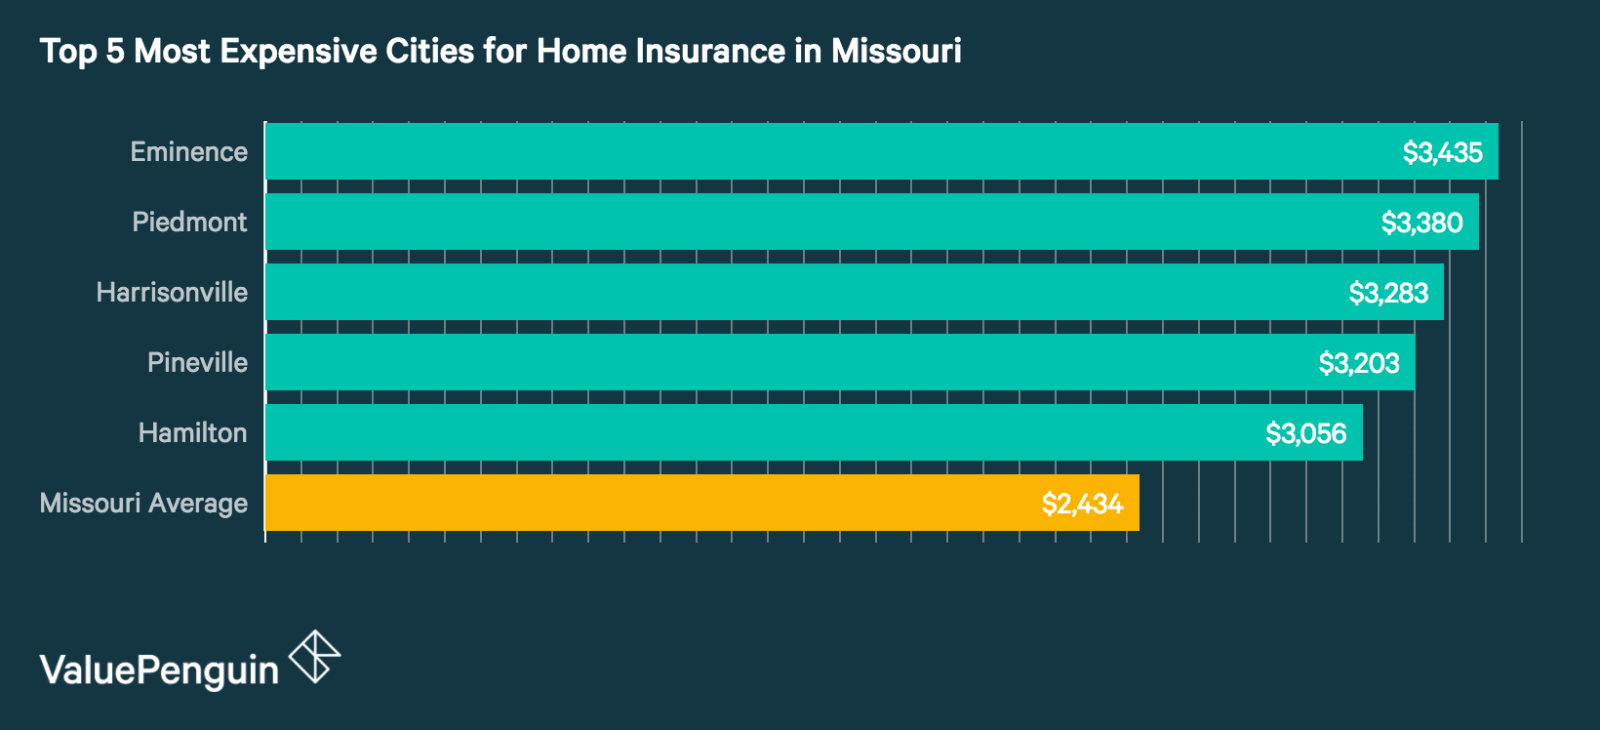 Top 5 Most Expensive Cities in Missouri for Homeowners Insurance